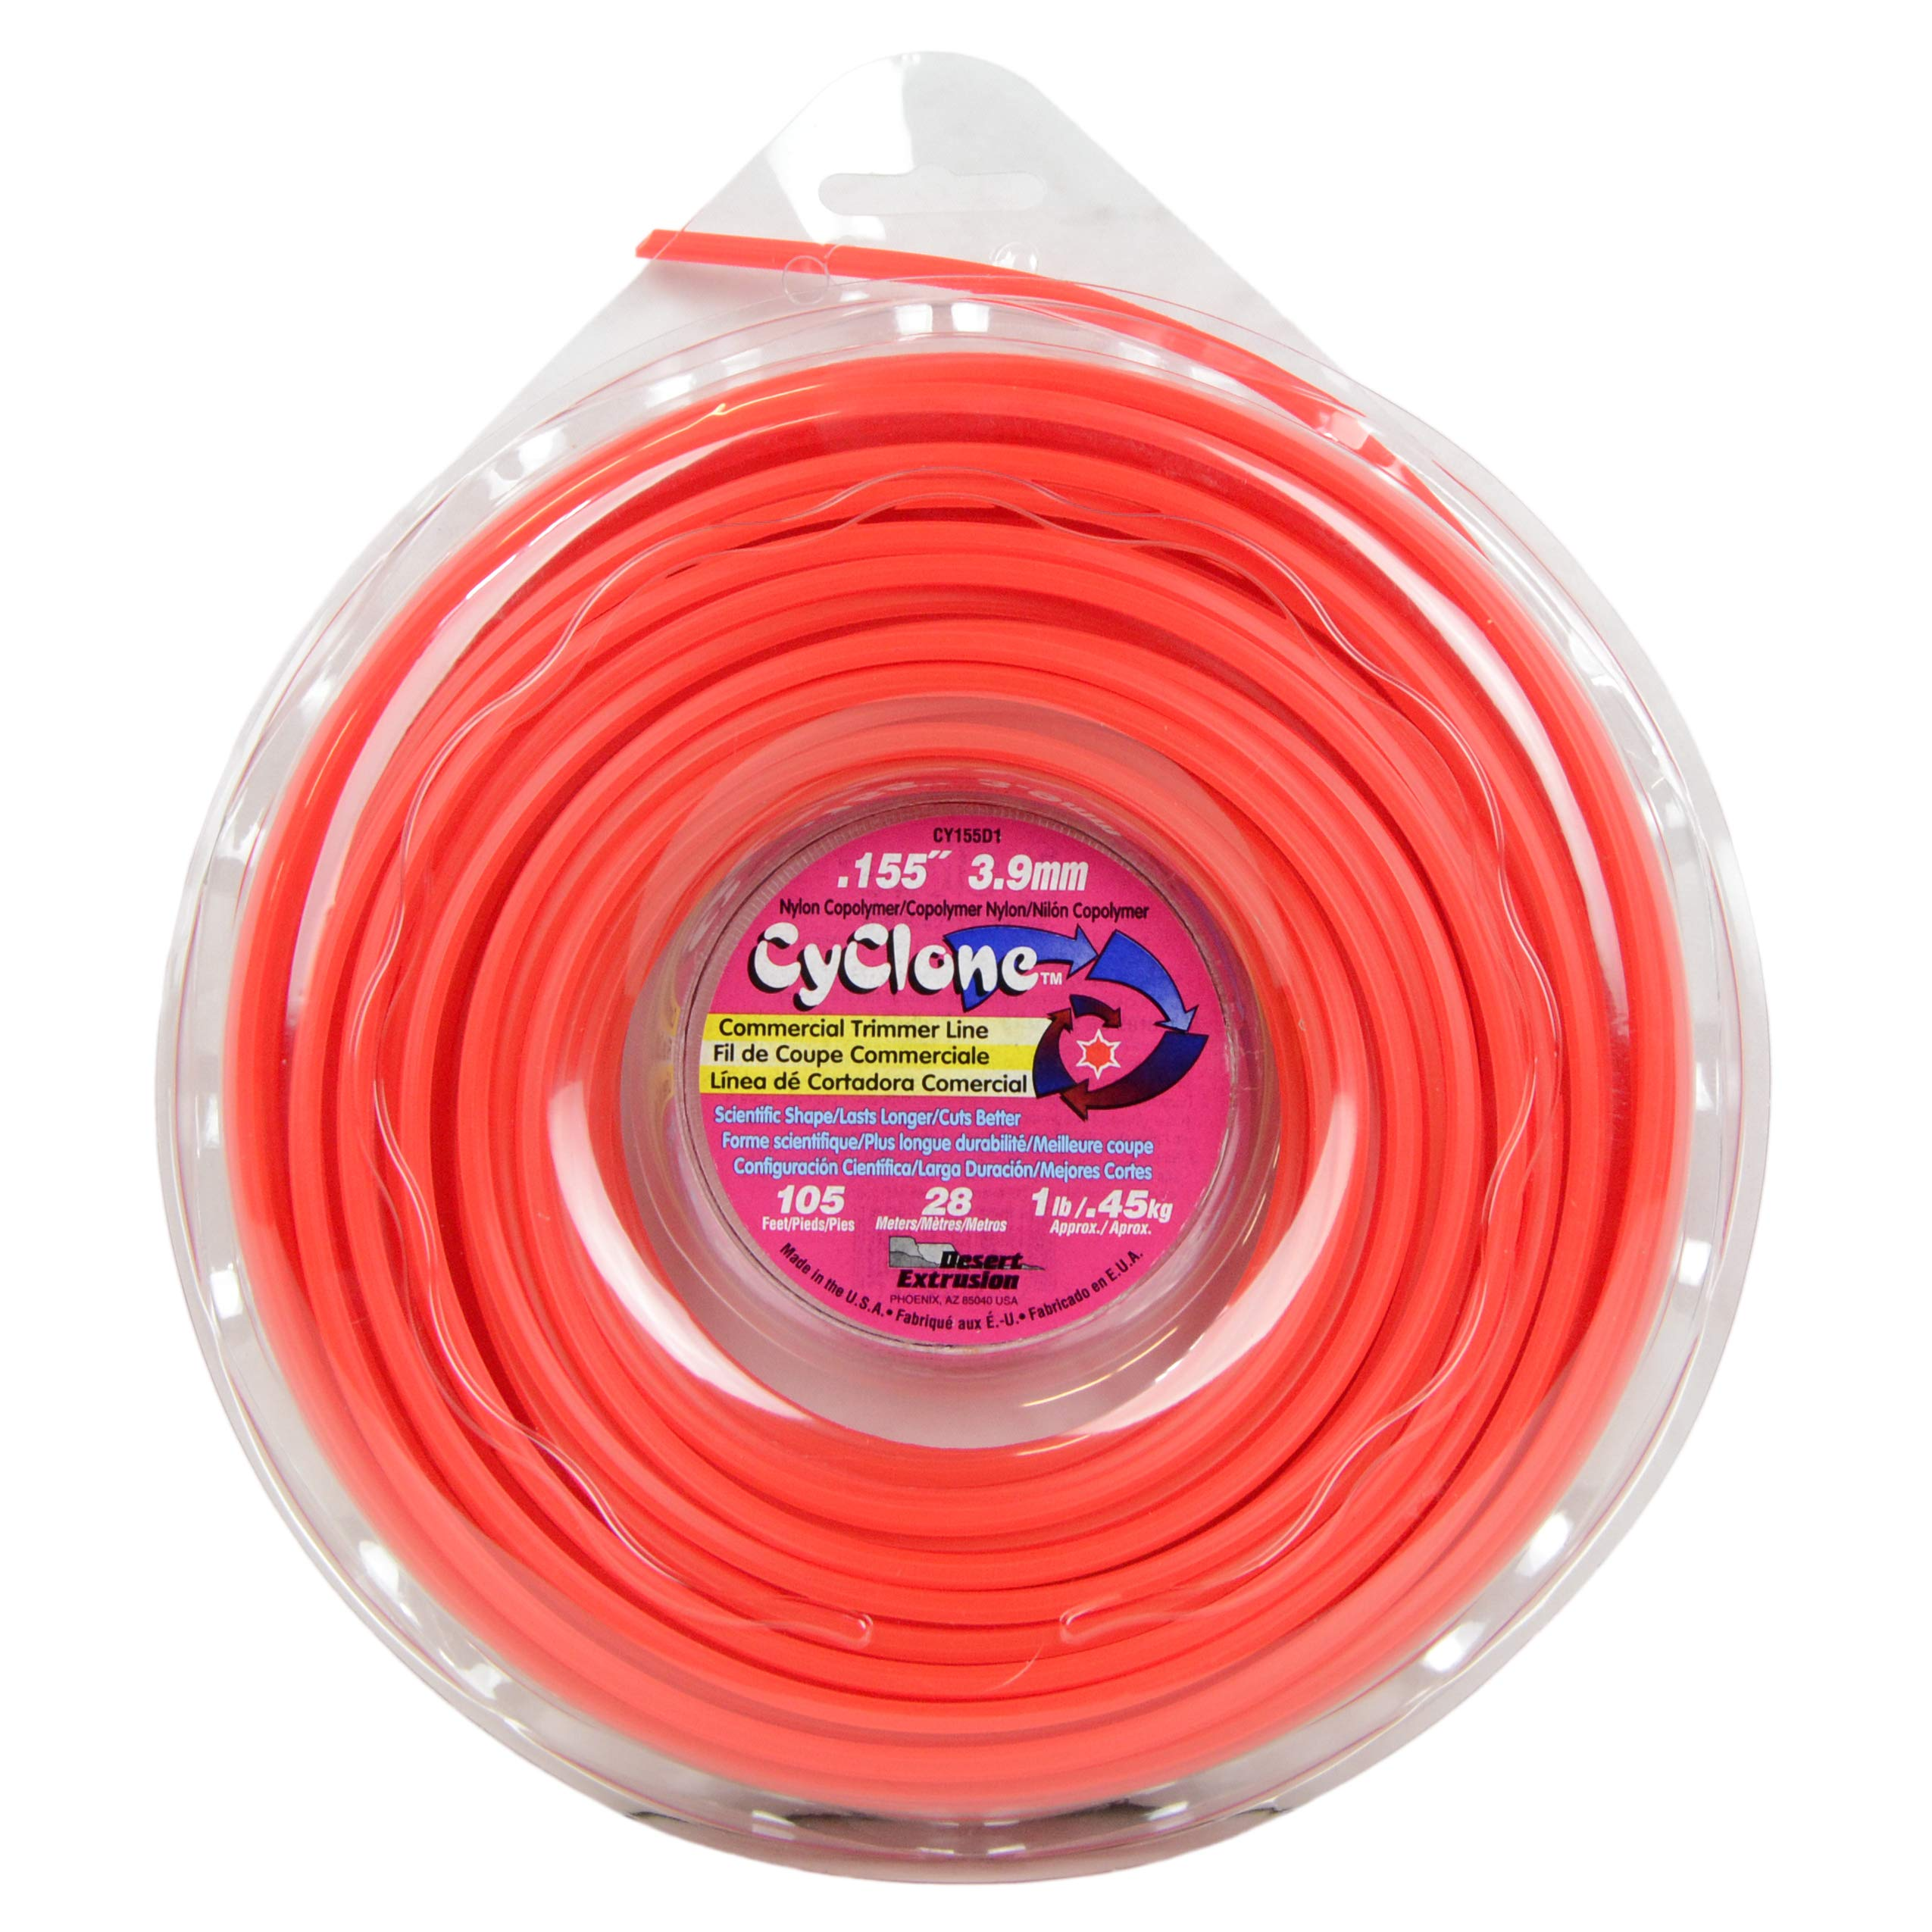 Cyclone CY155D1-12 0.155-Inch by 105-Feet Commercial Trimmer Line, Red by Cyclone